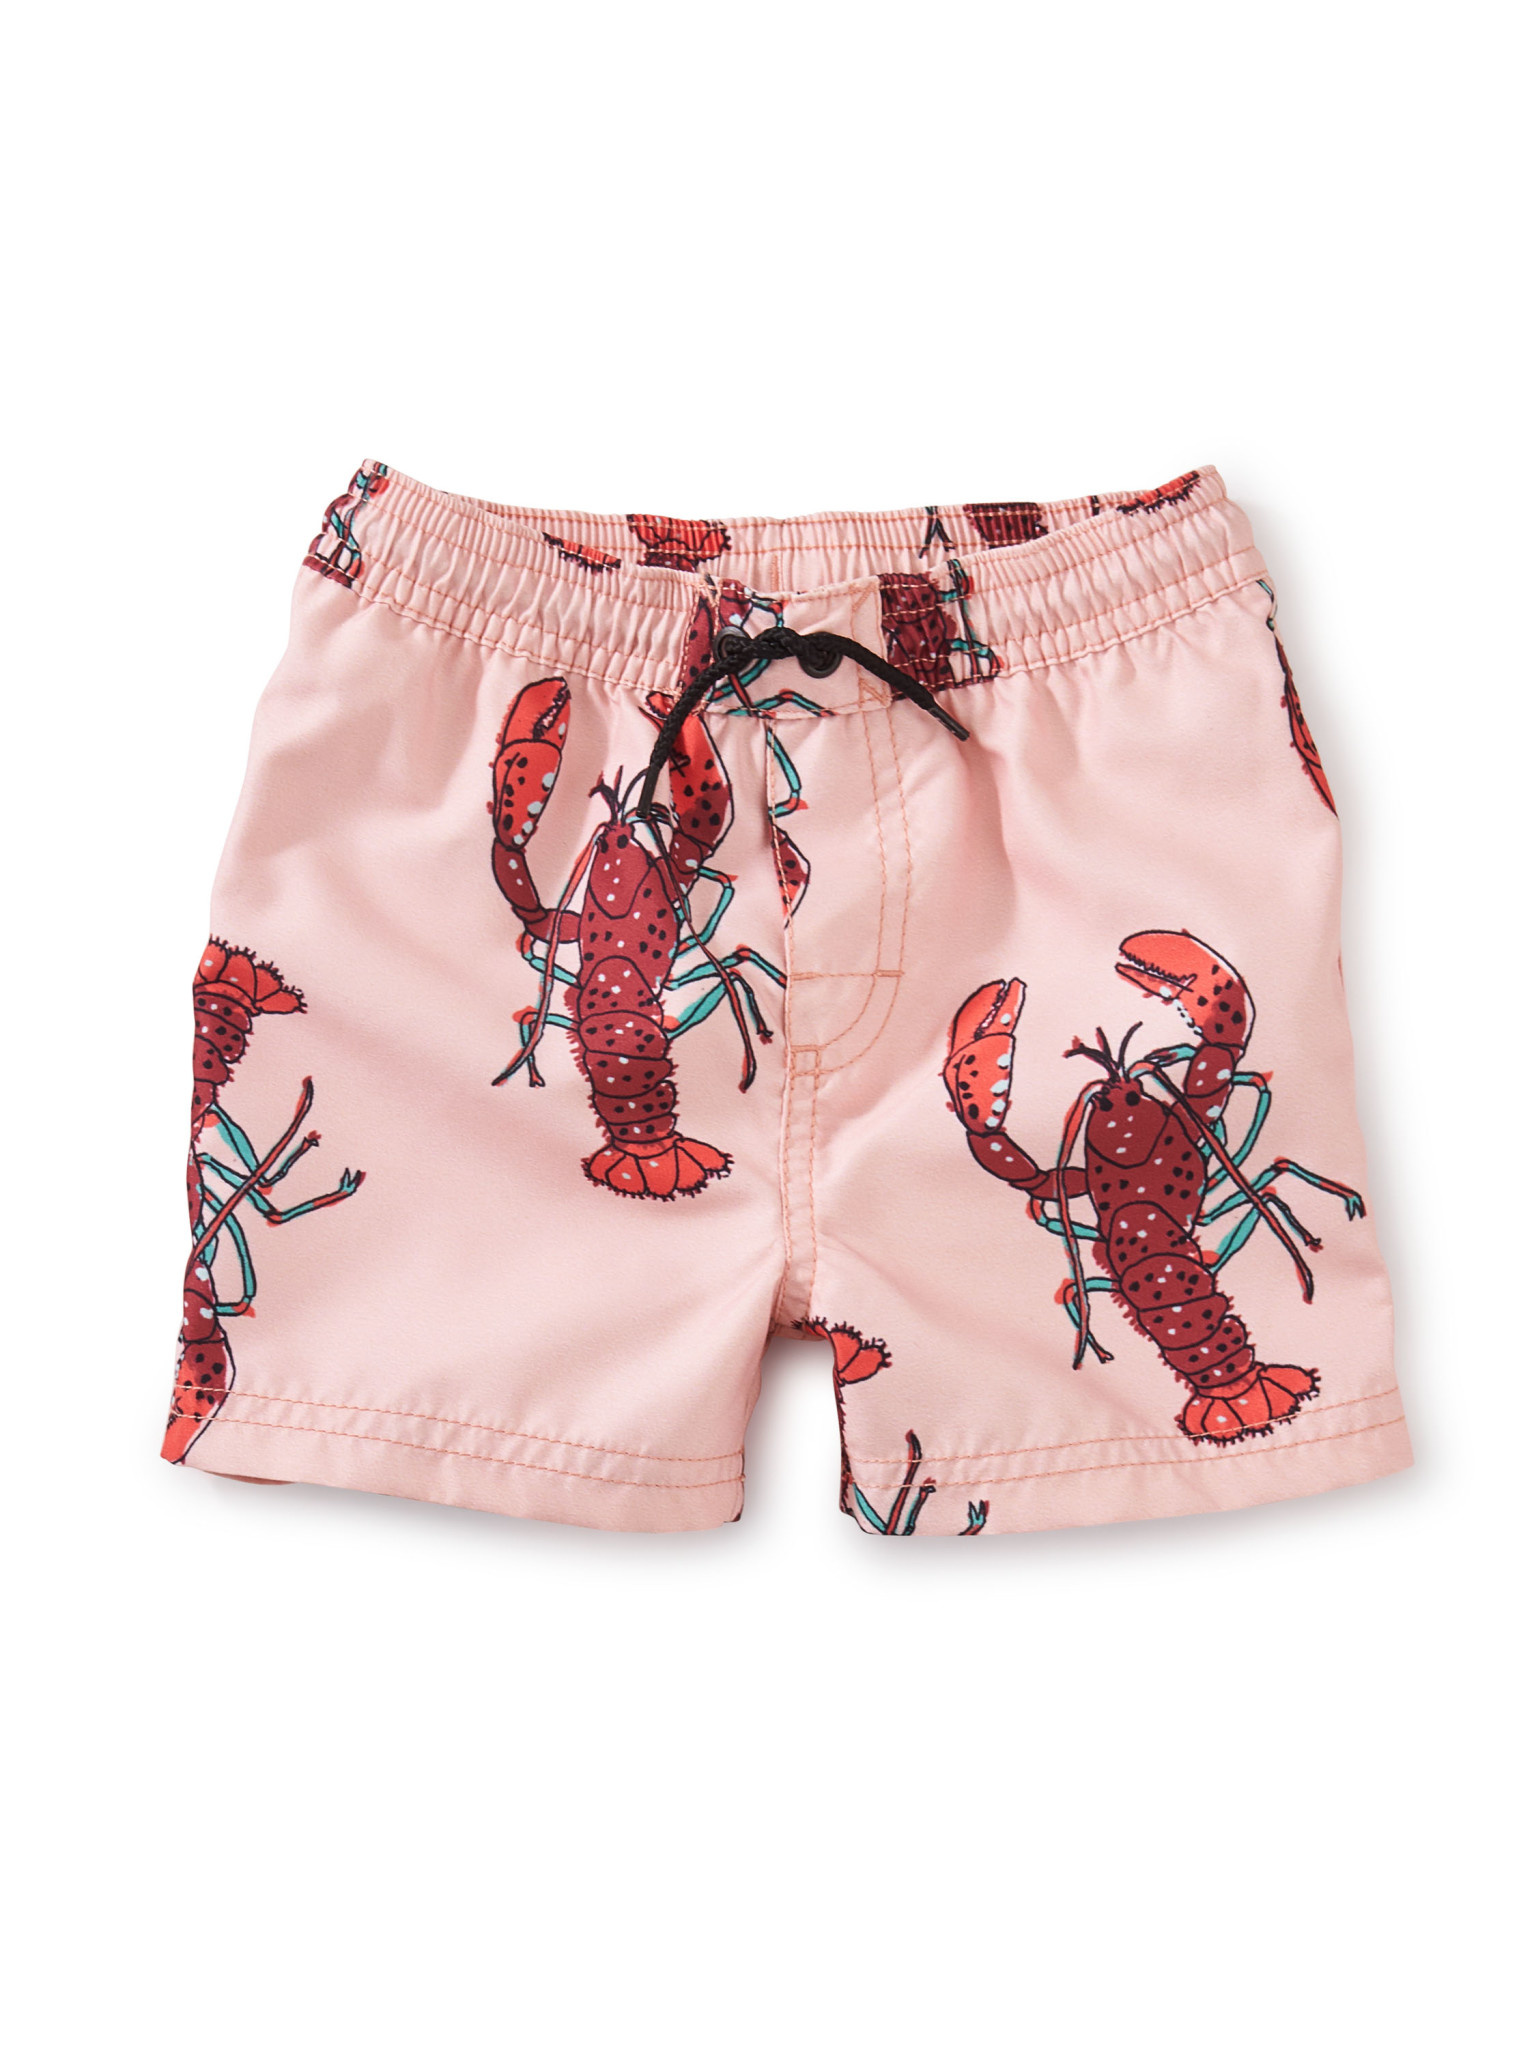 Tea Collection Saved by the Beach Baby Swim Trunk- Lobster